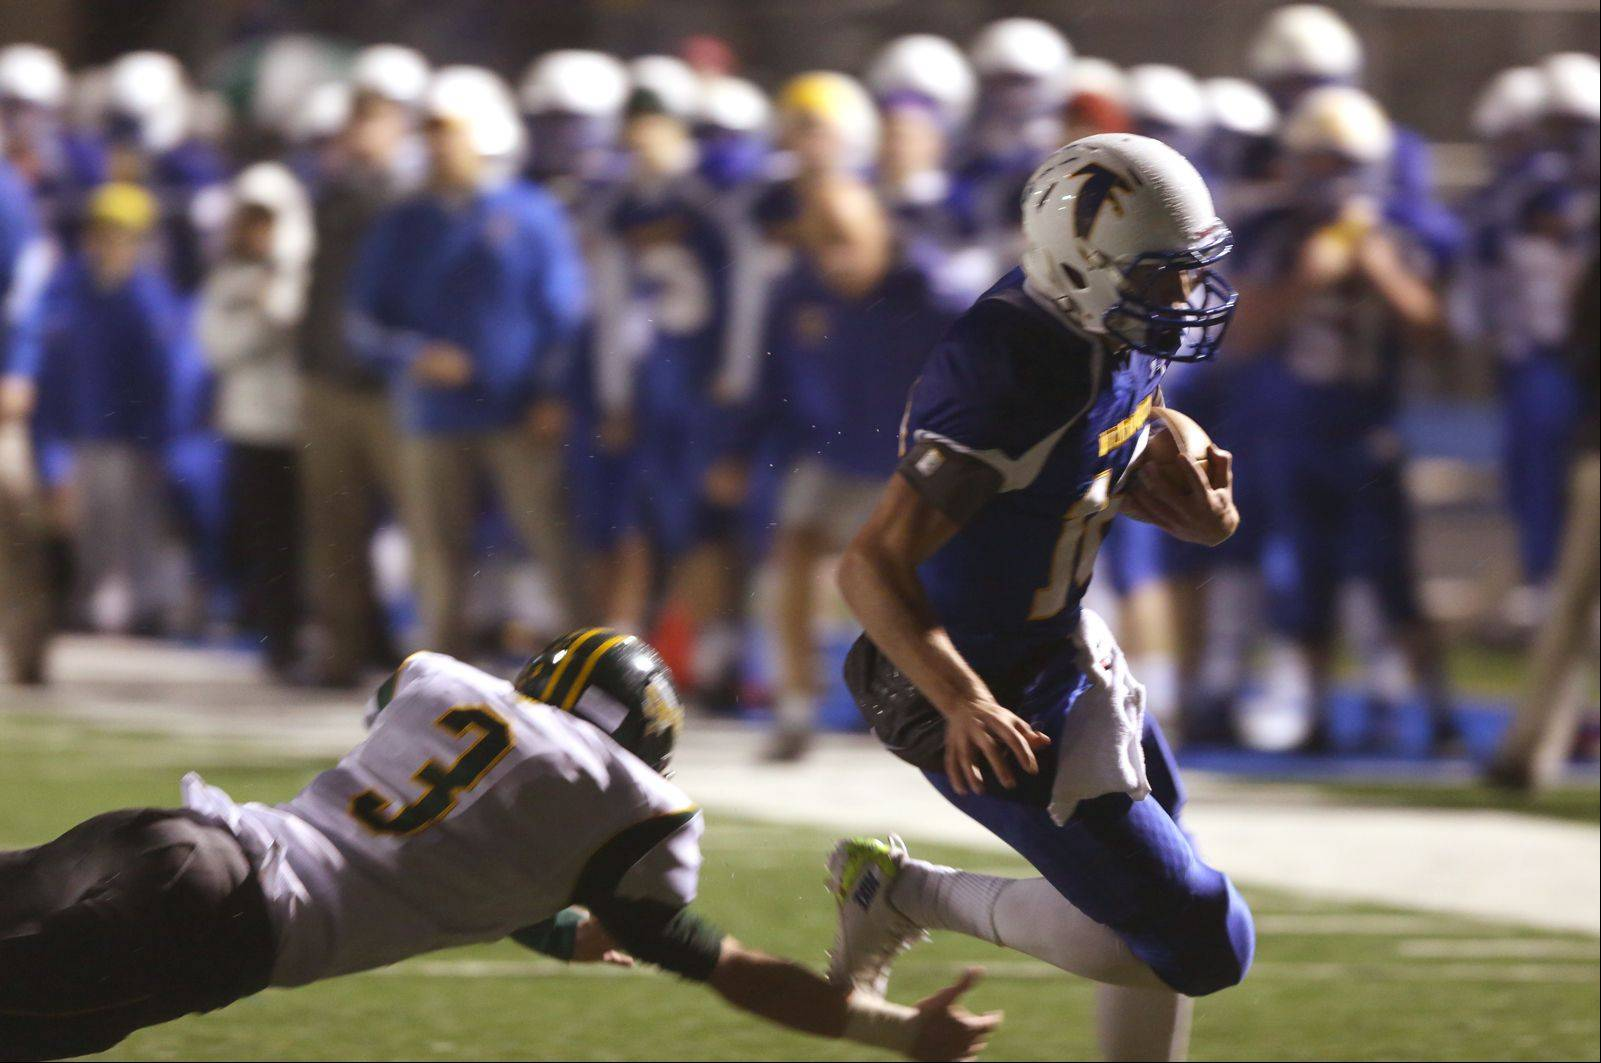 Images: Glenbrook North at Wheaton North playoff football